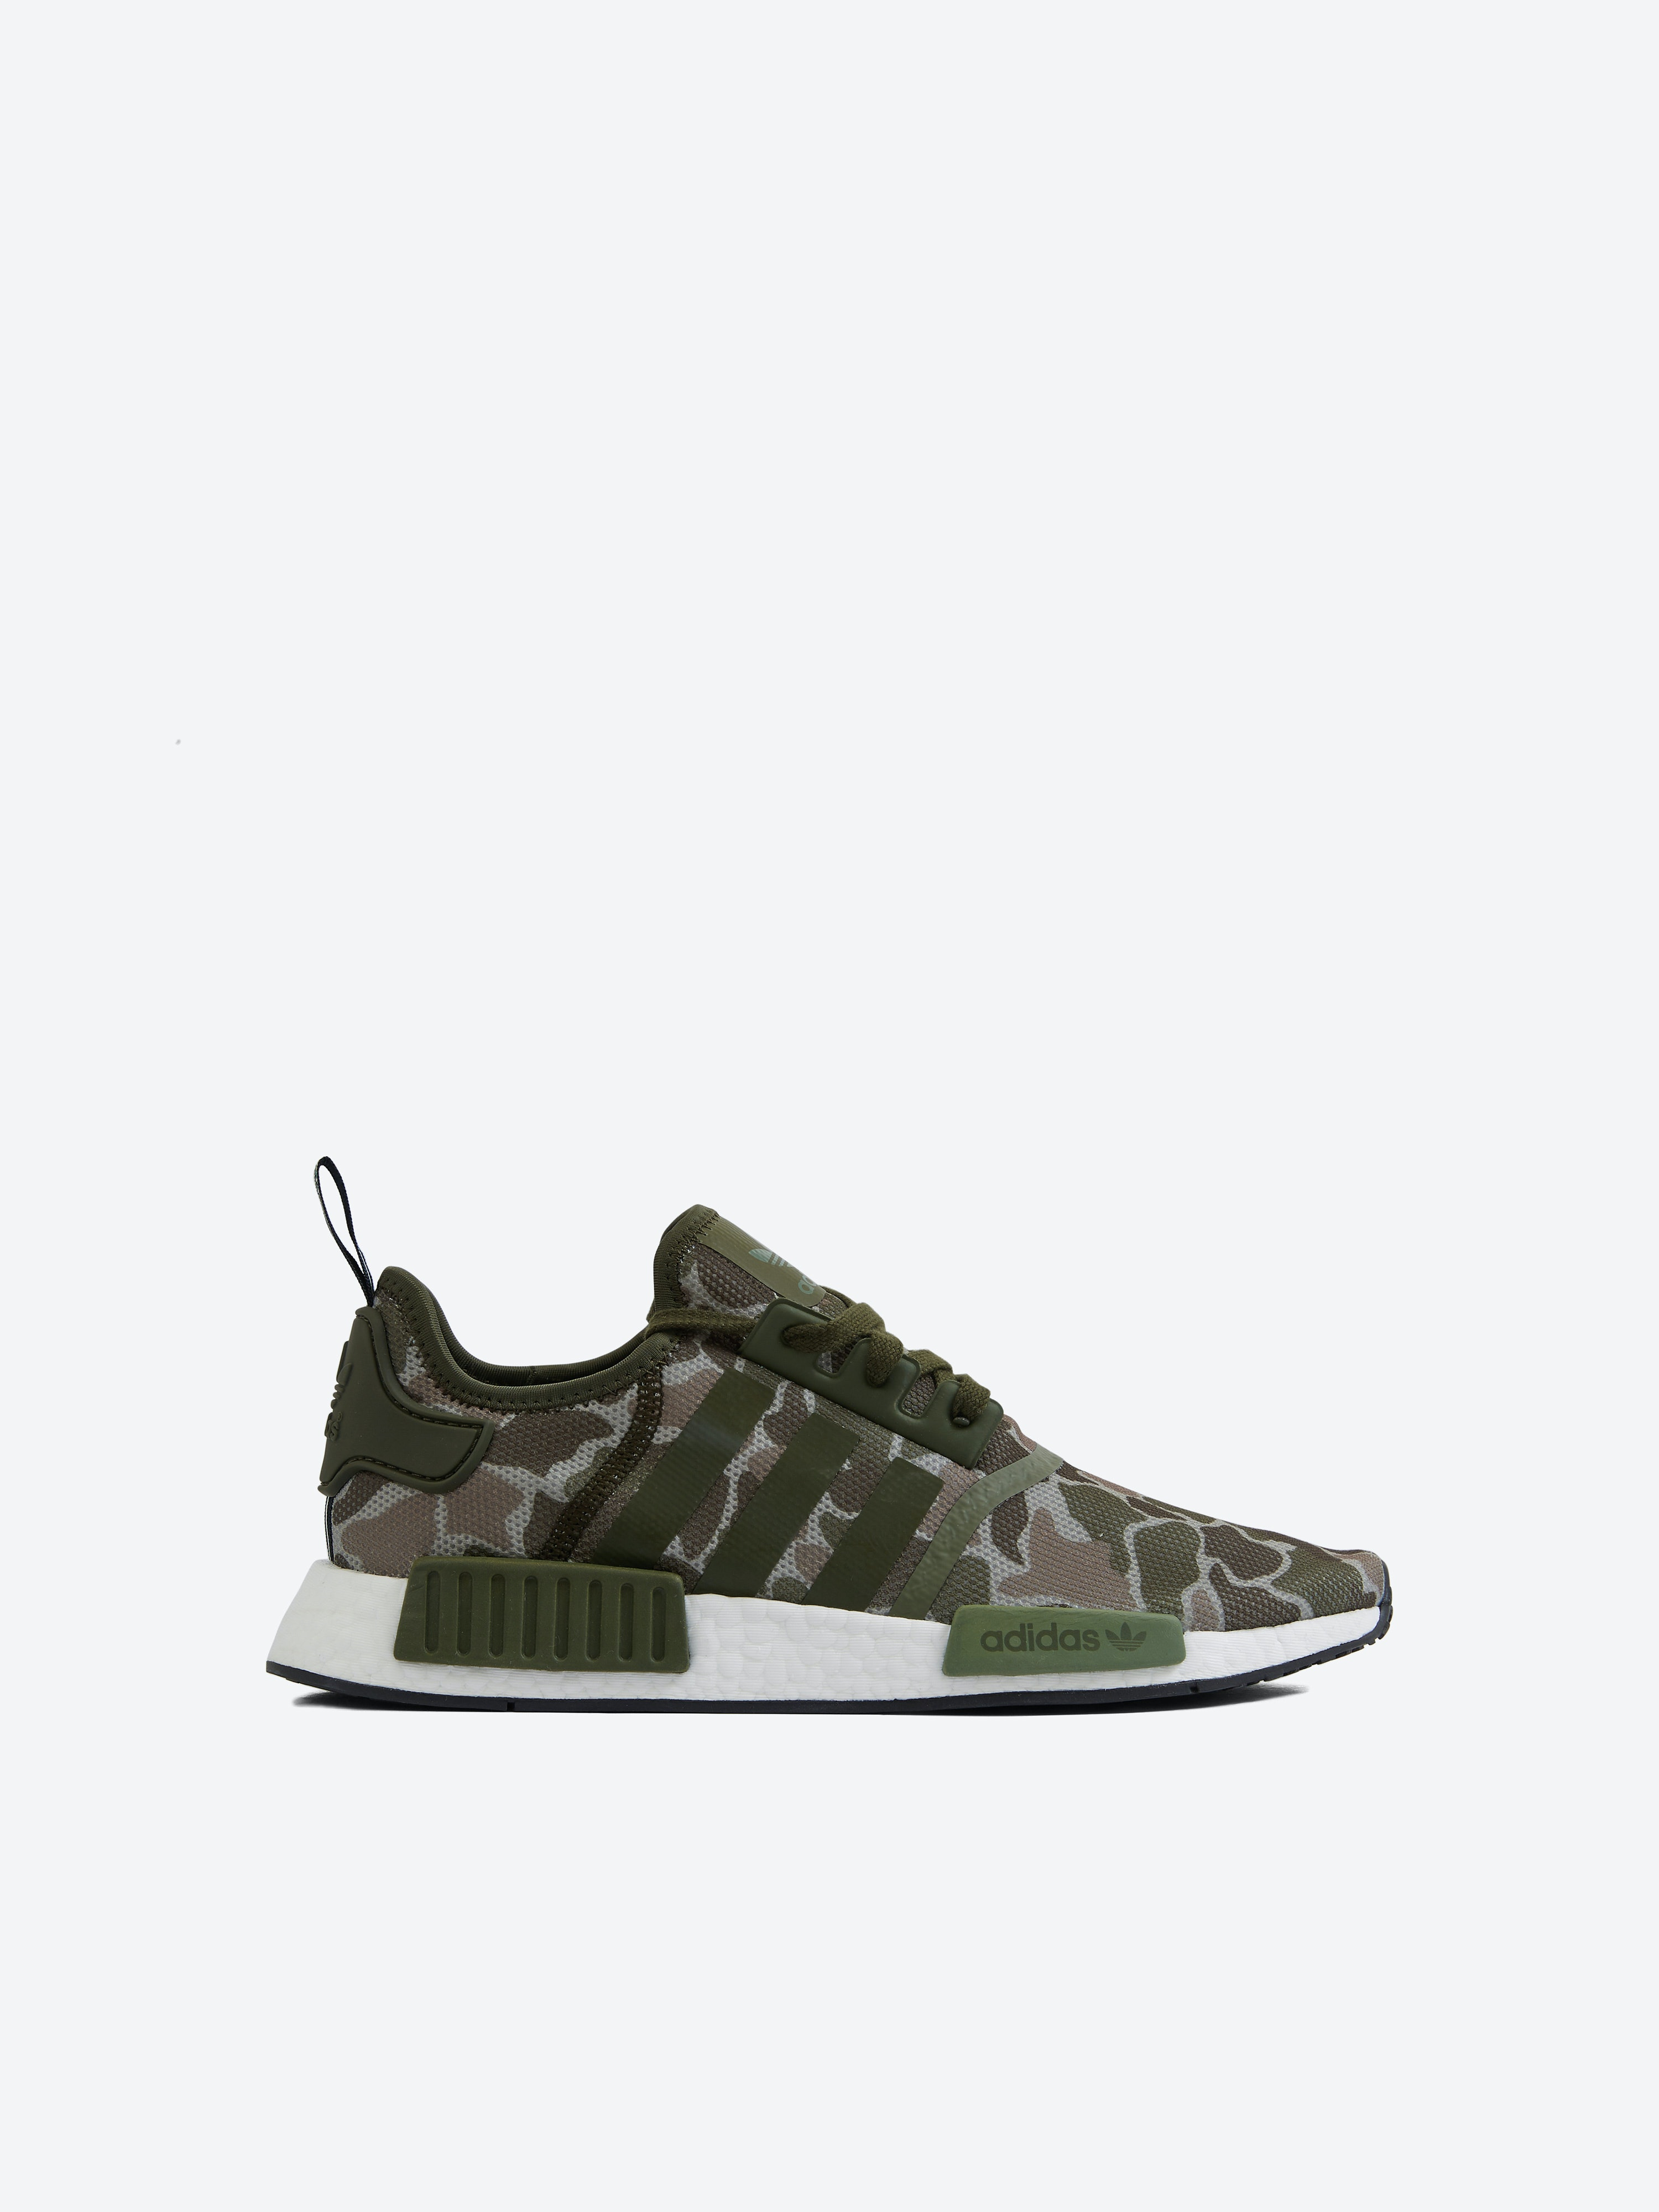 13e3c3ef9 adidas nmd r1 primeknit camo grønn rosa dame by9864  sneakers volt norge